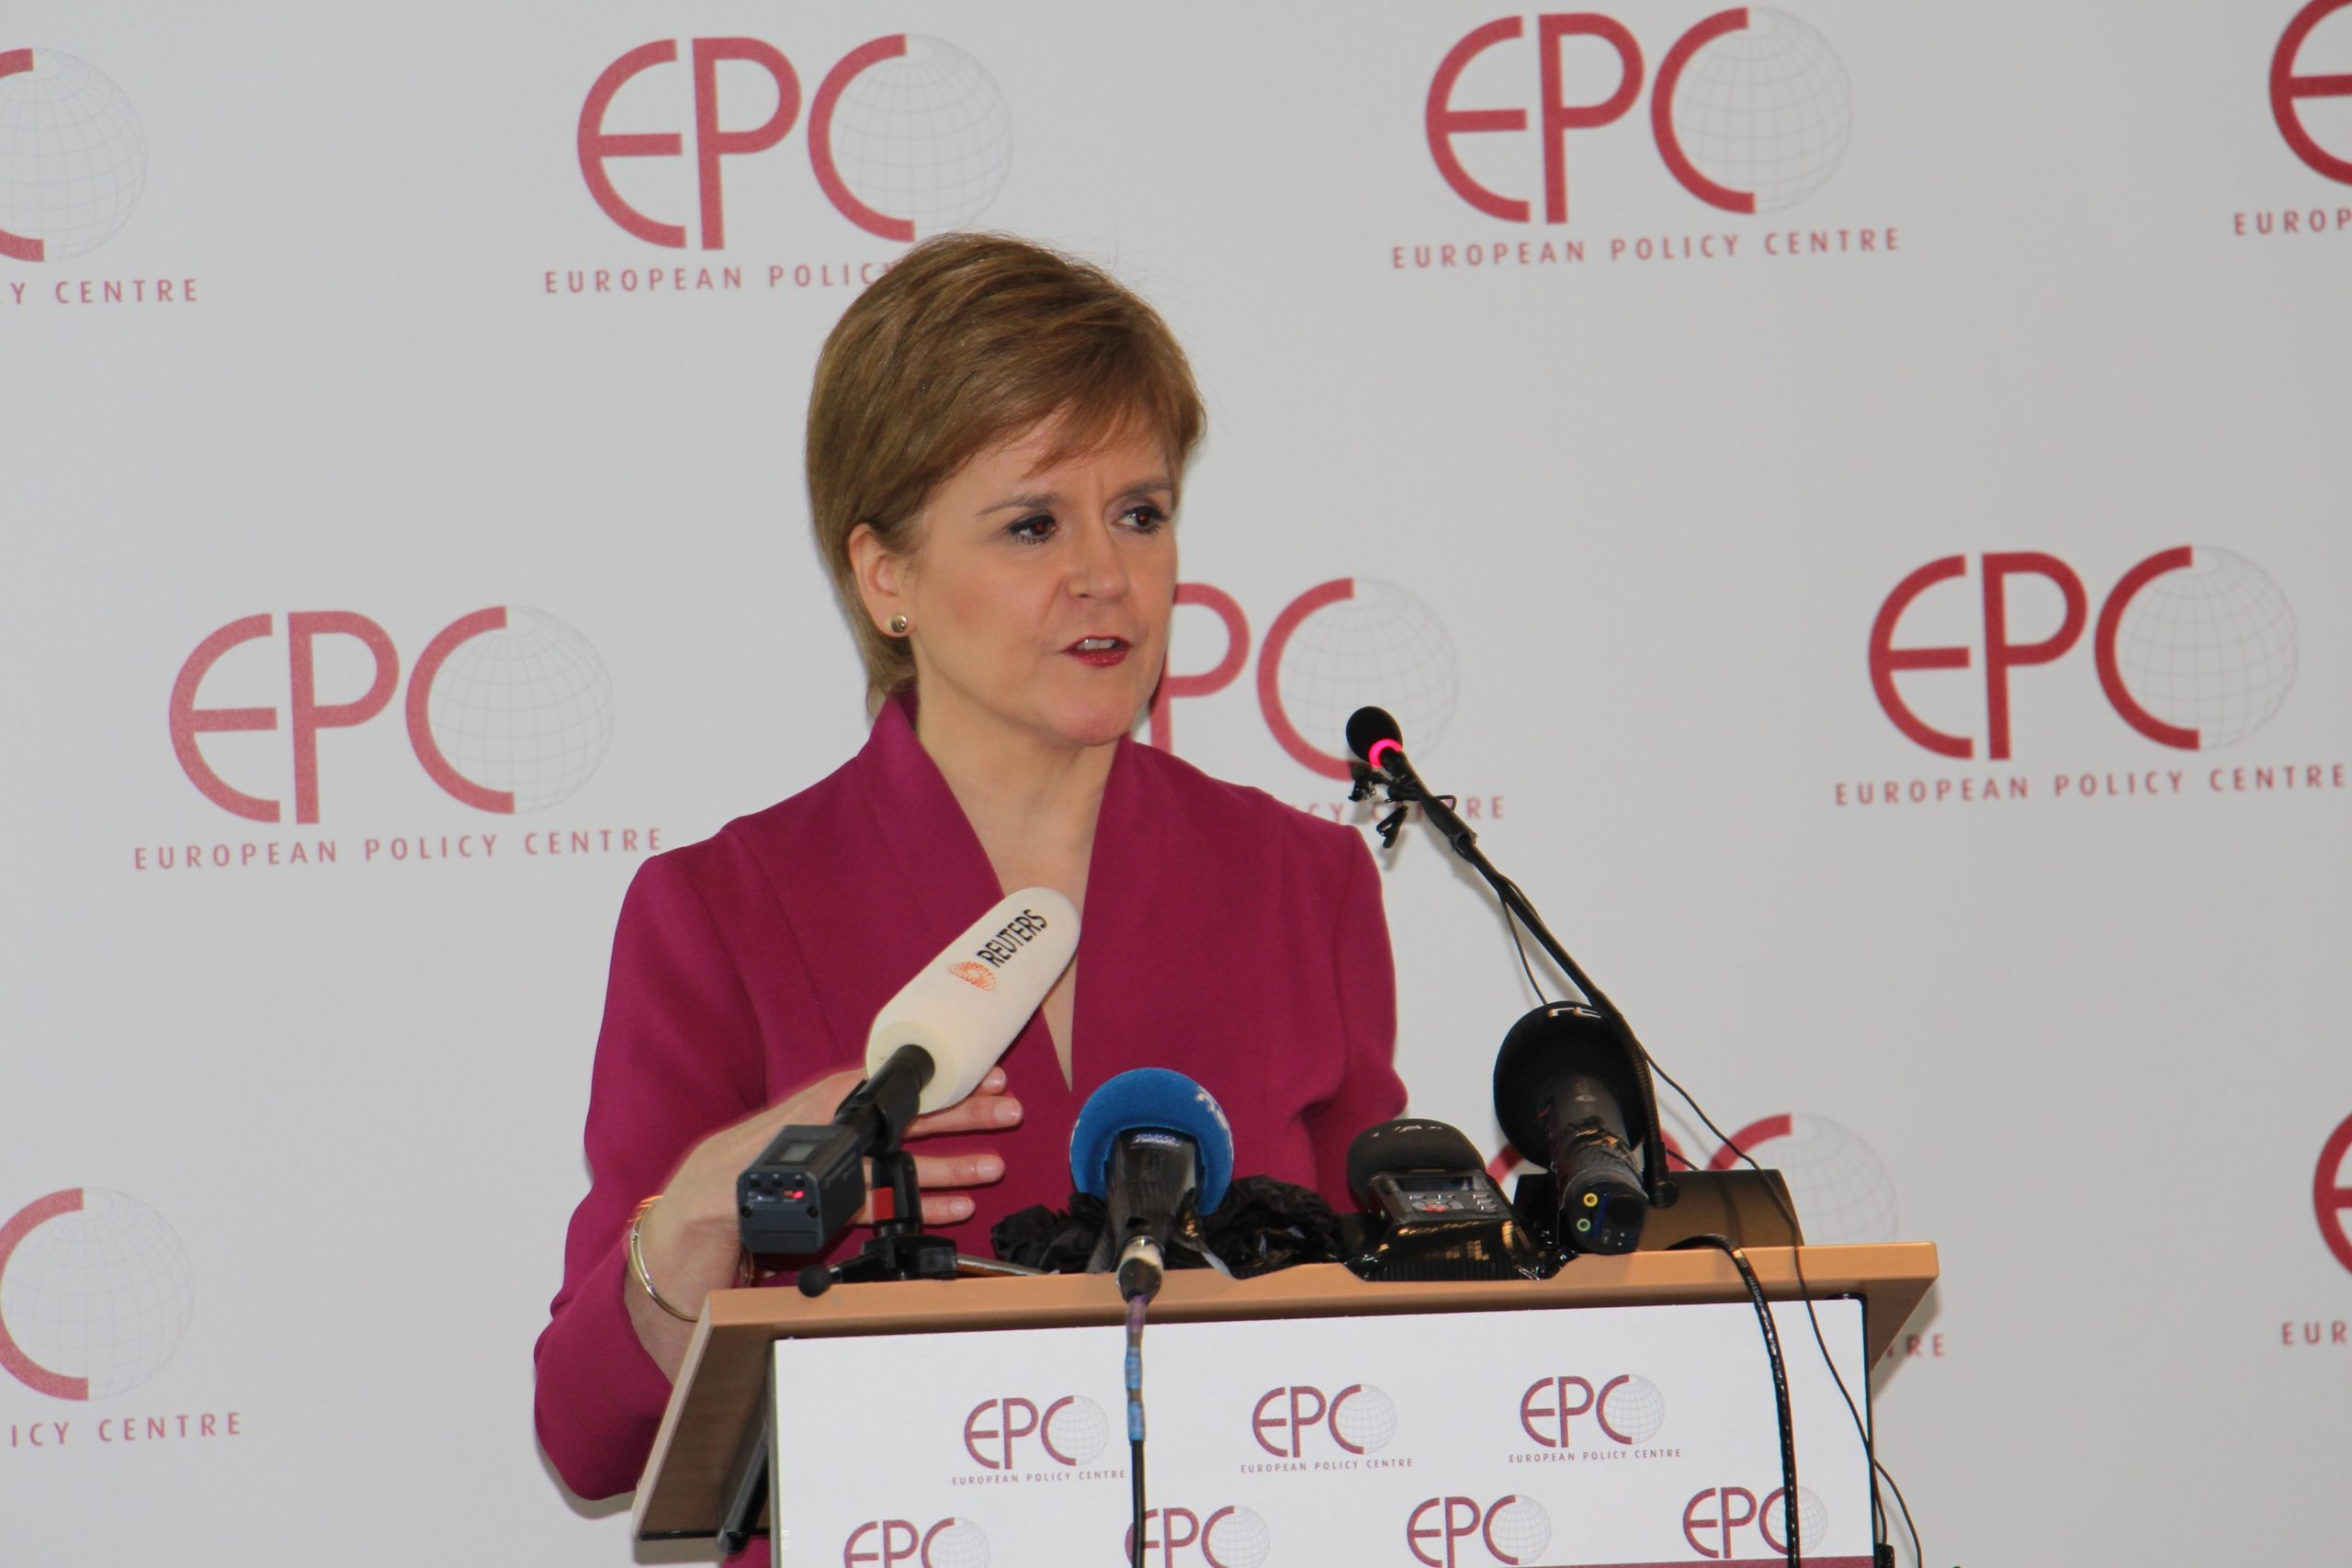 Nicola Sturgeon speaking at the European Policy Centre on February 10 2020.